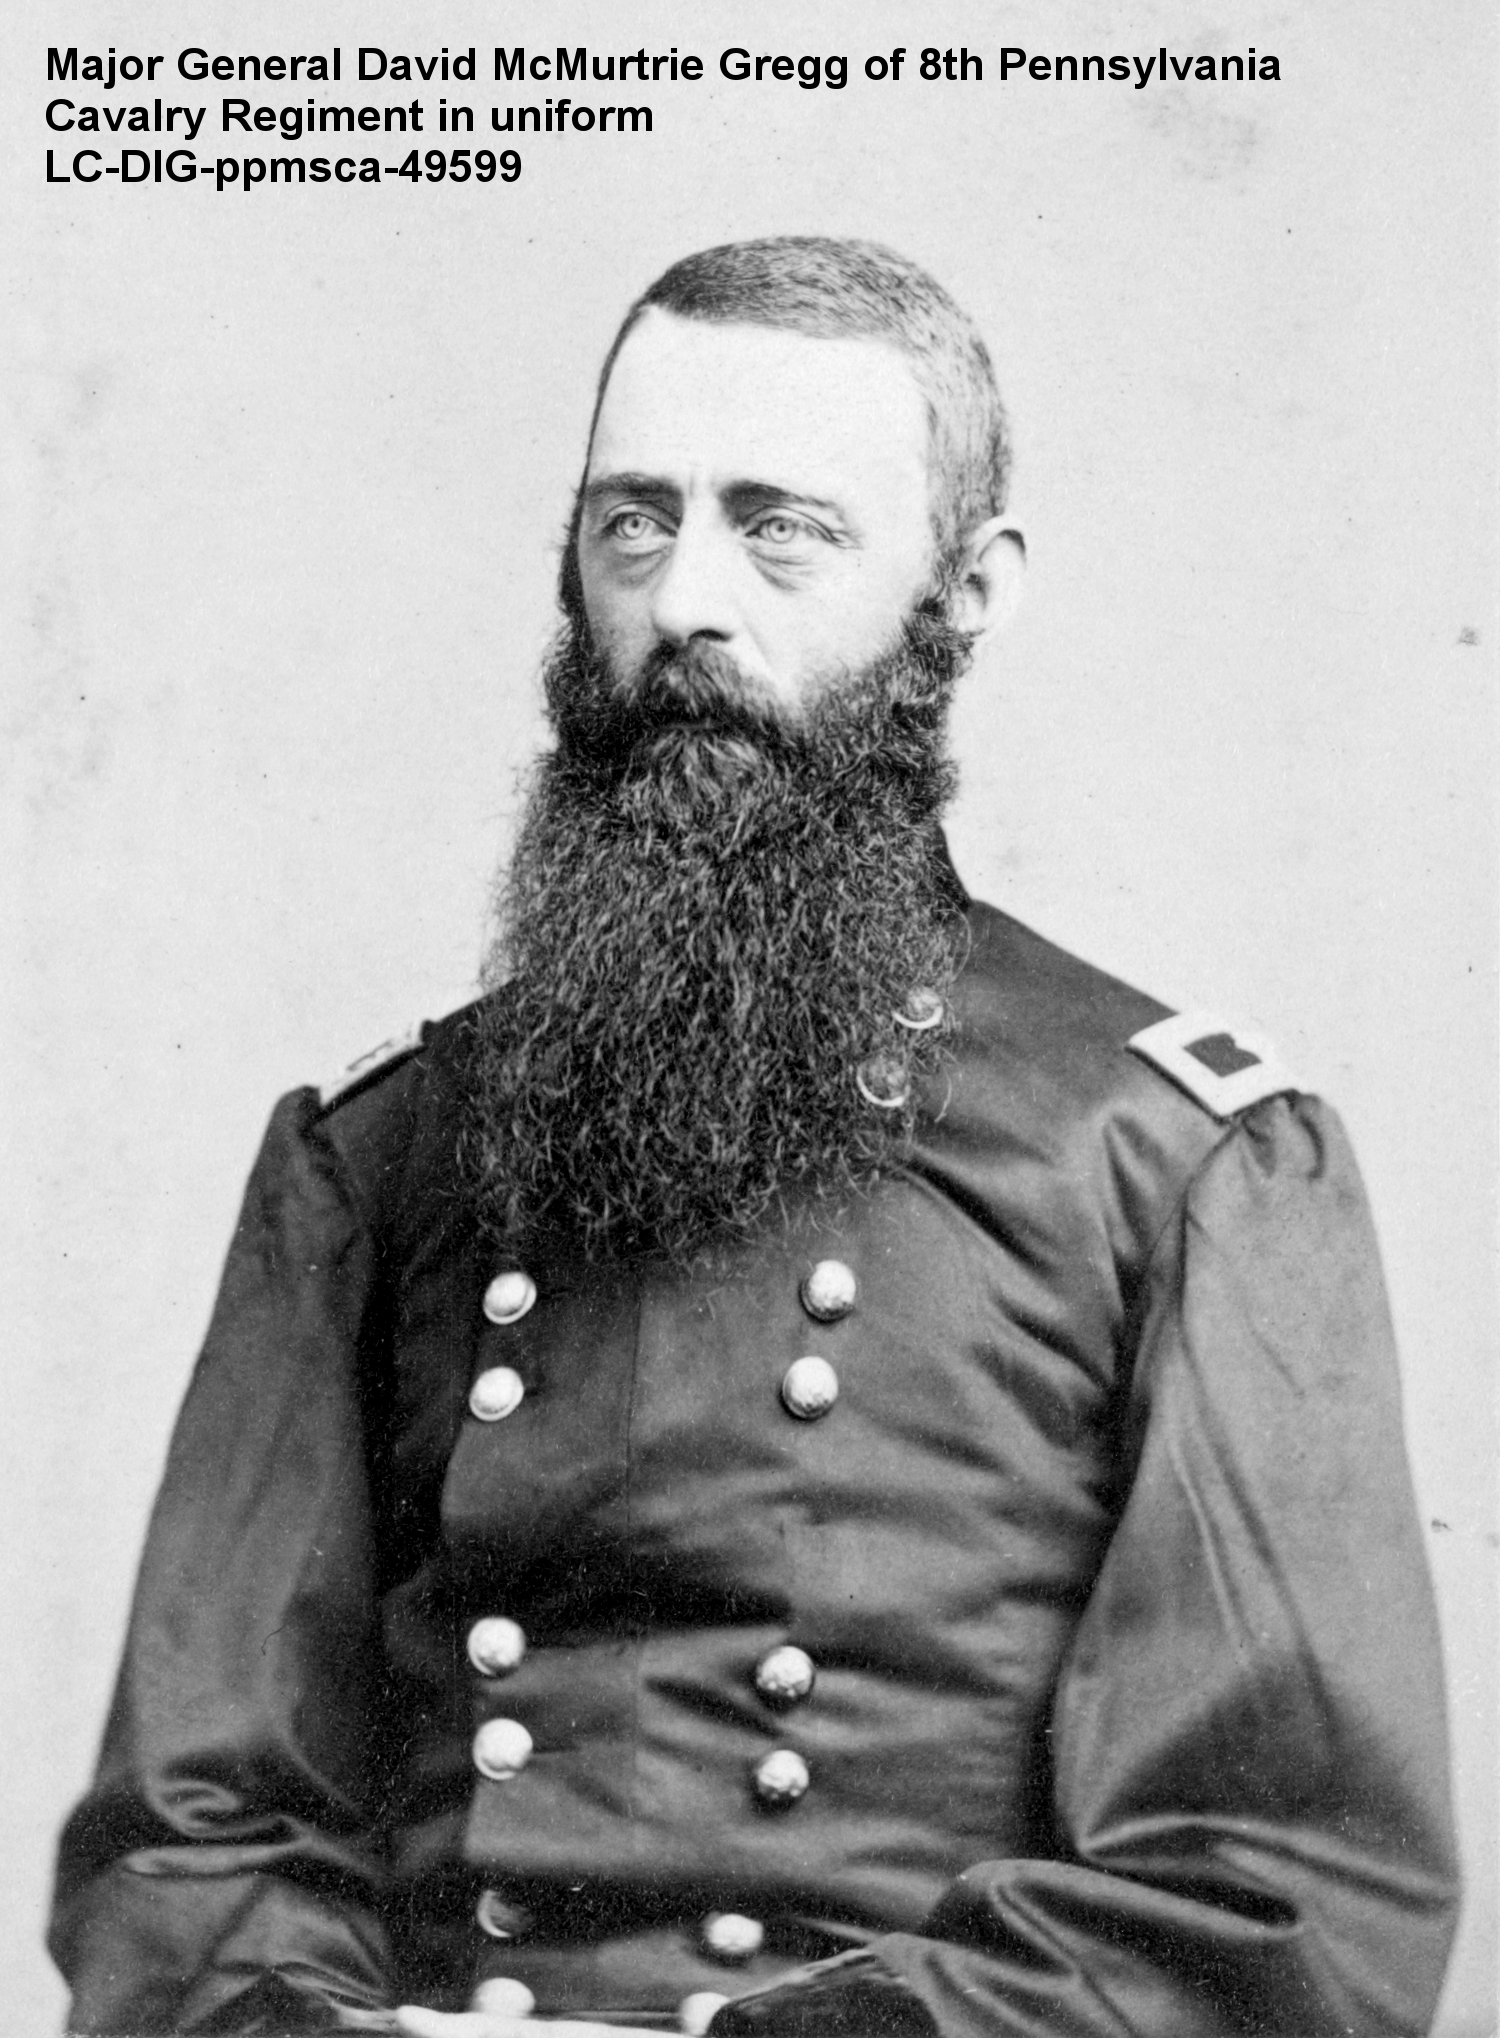 Gregg graduated West Point in 1855, sharing the campus during his time there with a future cavalry comrade – Philip Sheridan – and an adversary – J. E. B. Stuart https://www.amazon.com/Soldiers-Friend-Civil-Cornelia-Hancock/dp/0982809301